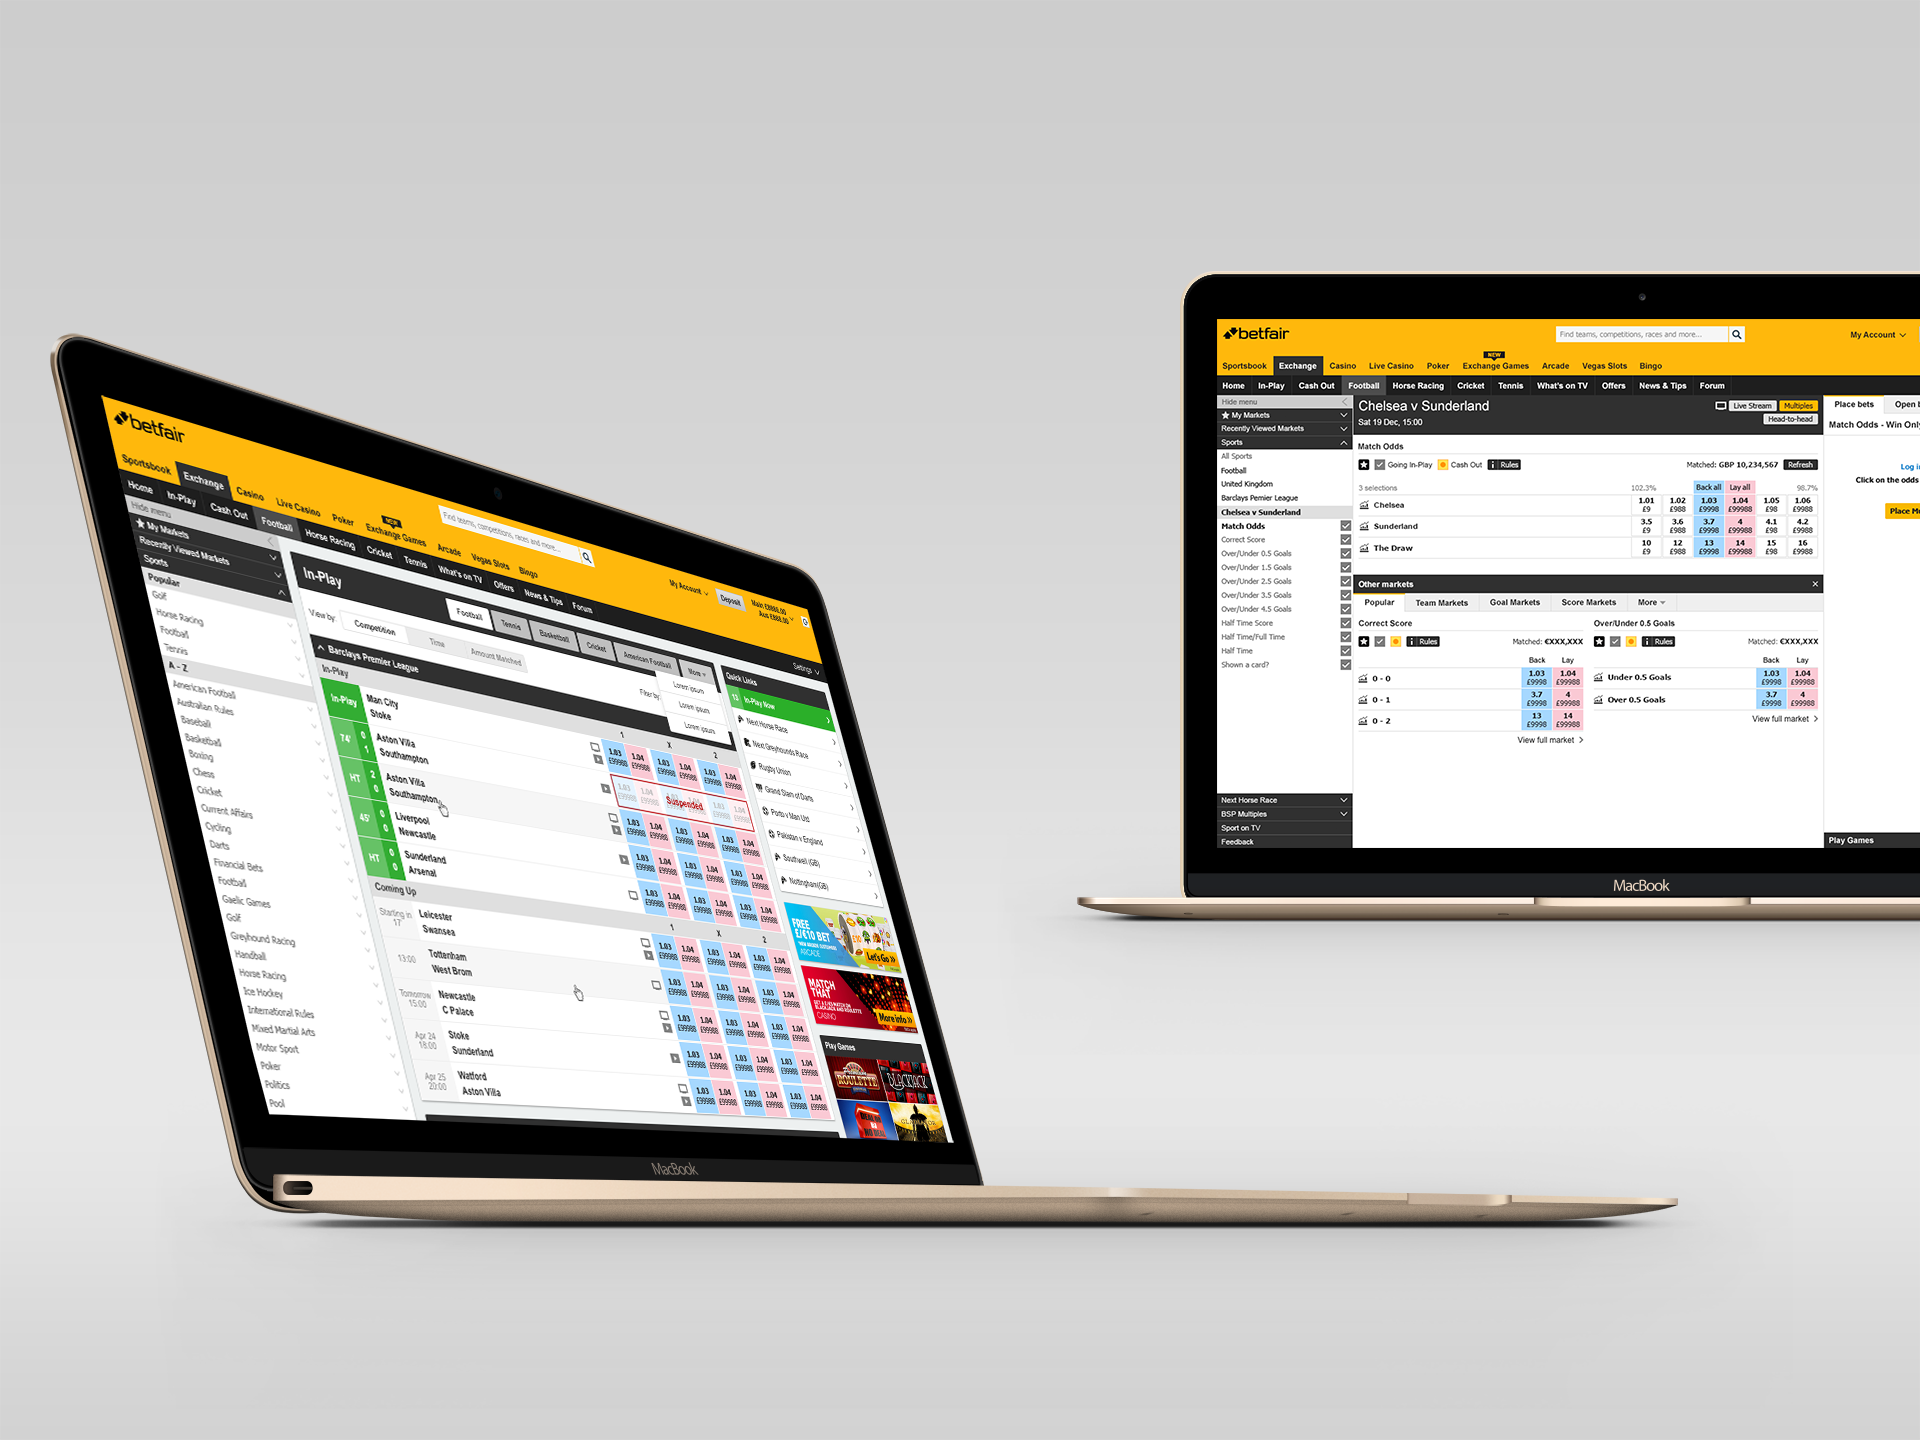 betfair-exchange-visuals-1